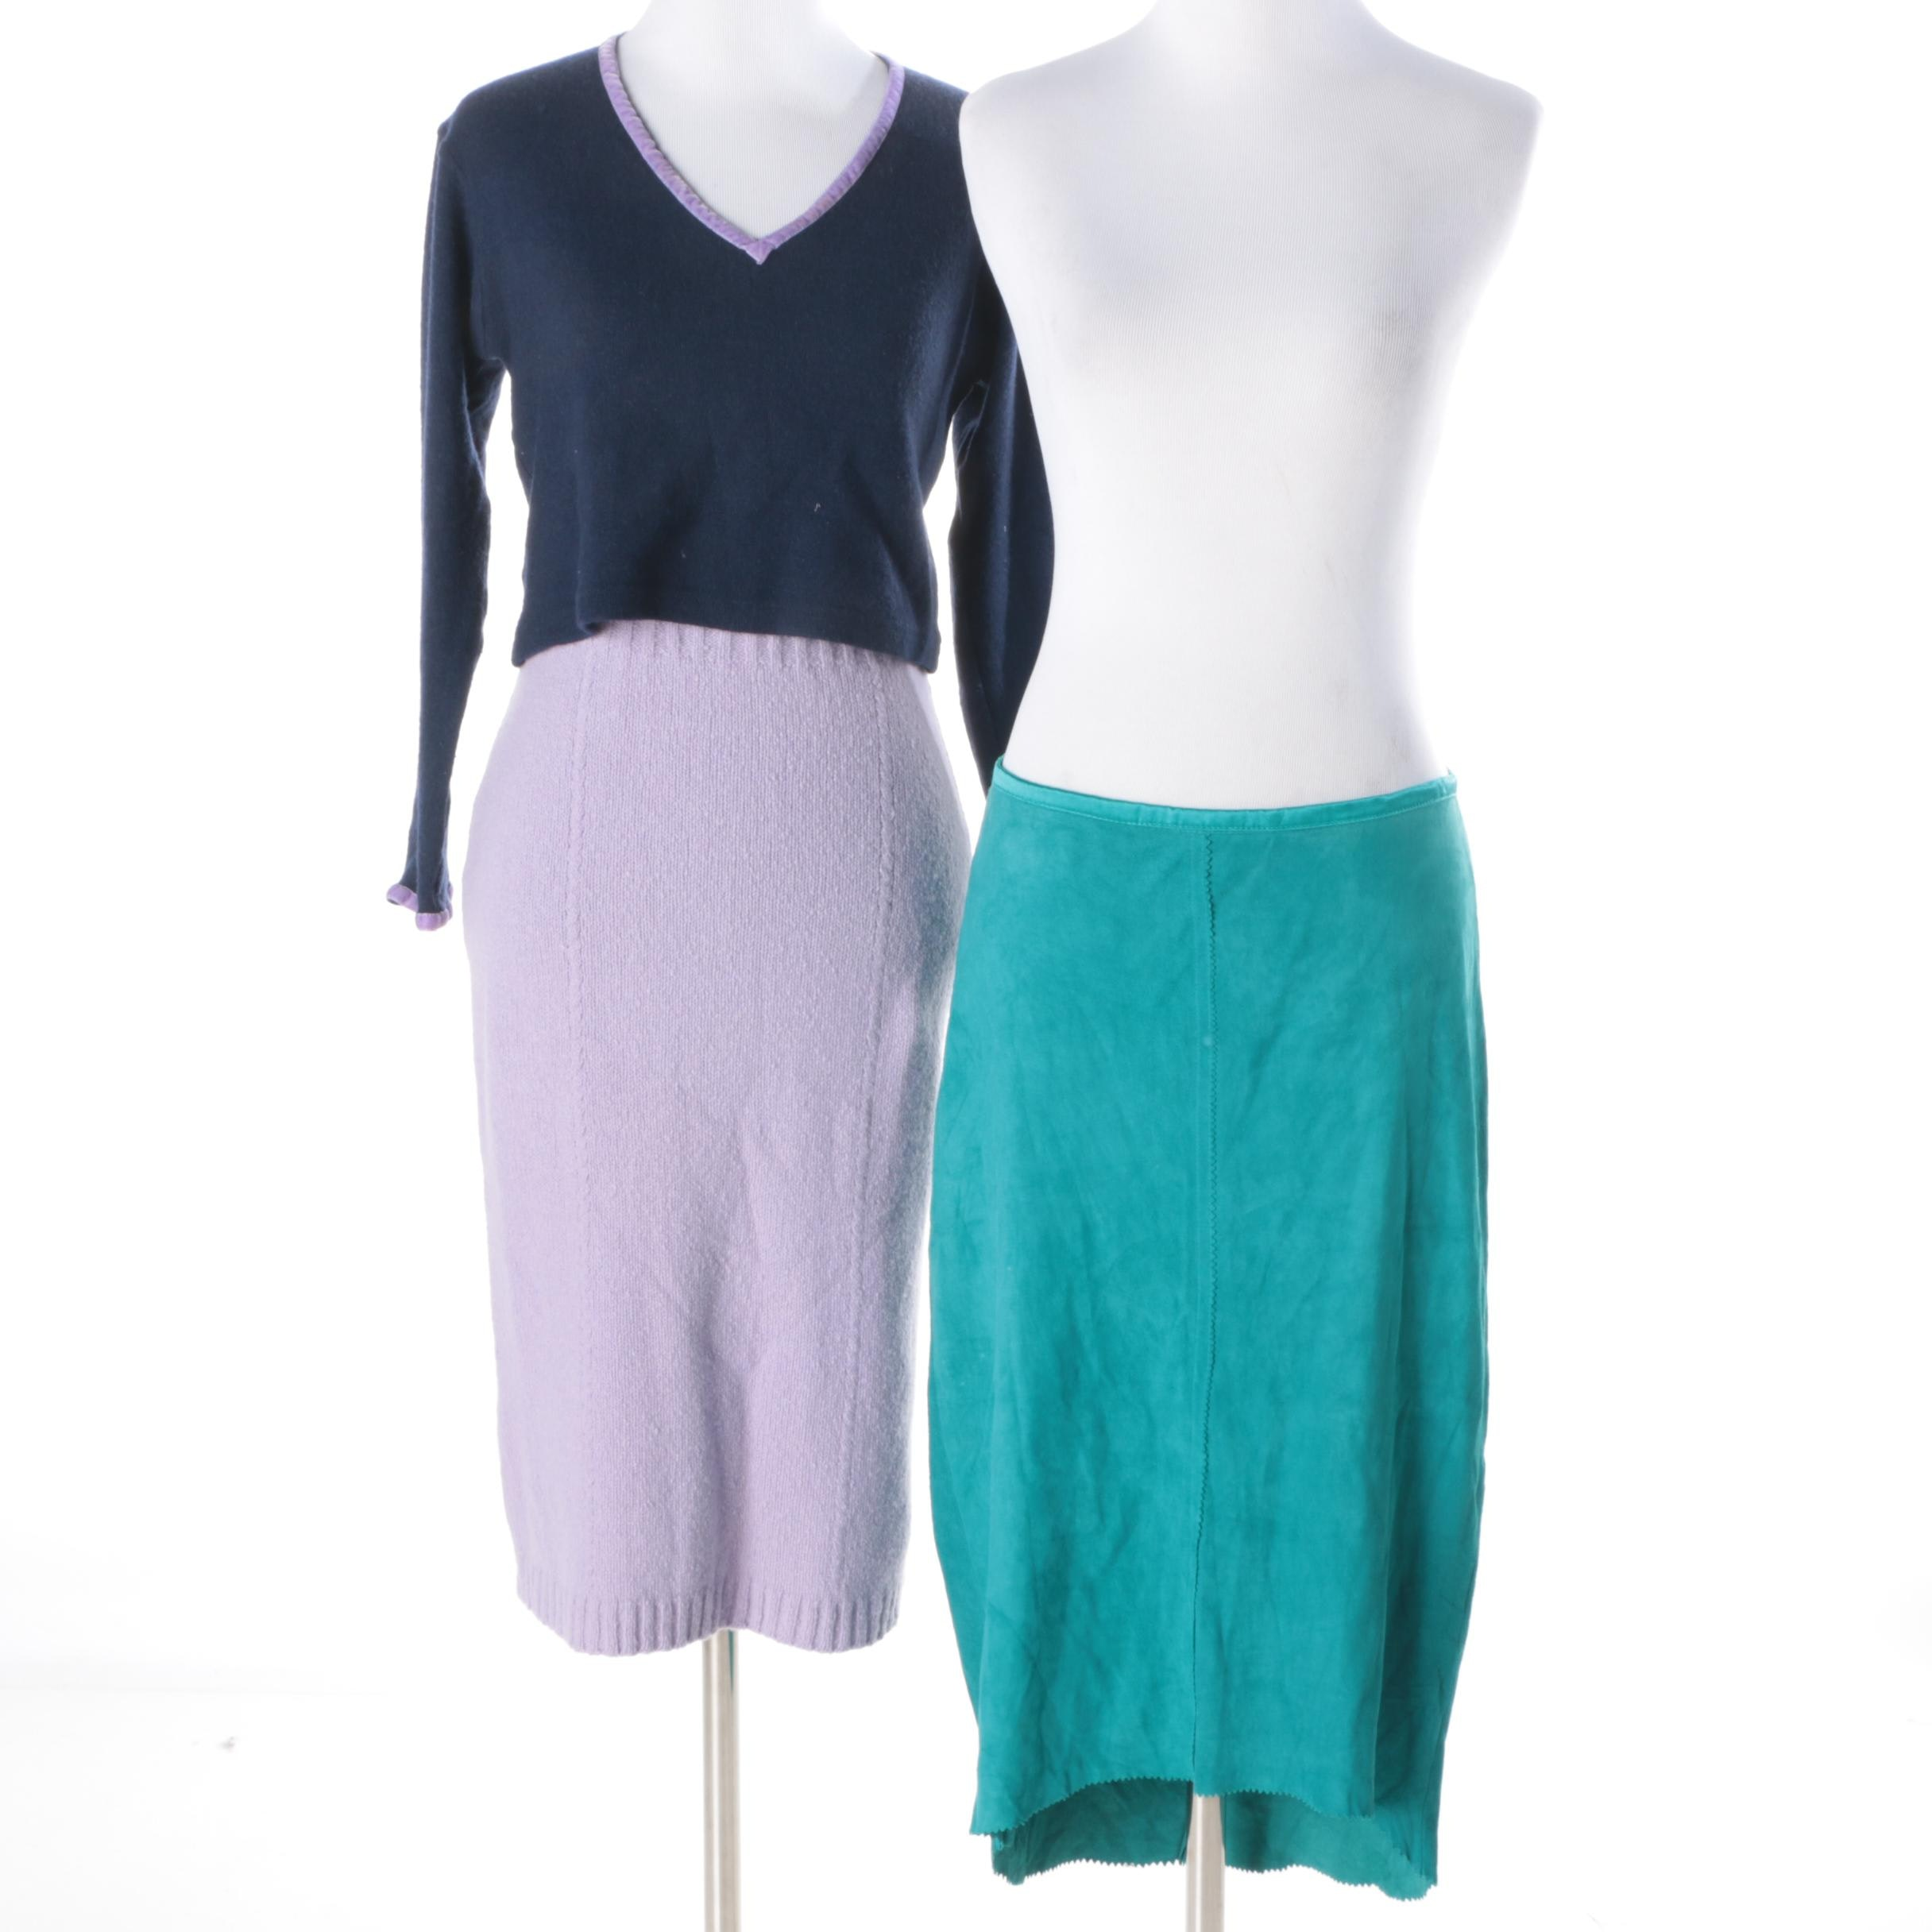 Women's Sweater and Two Skirts